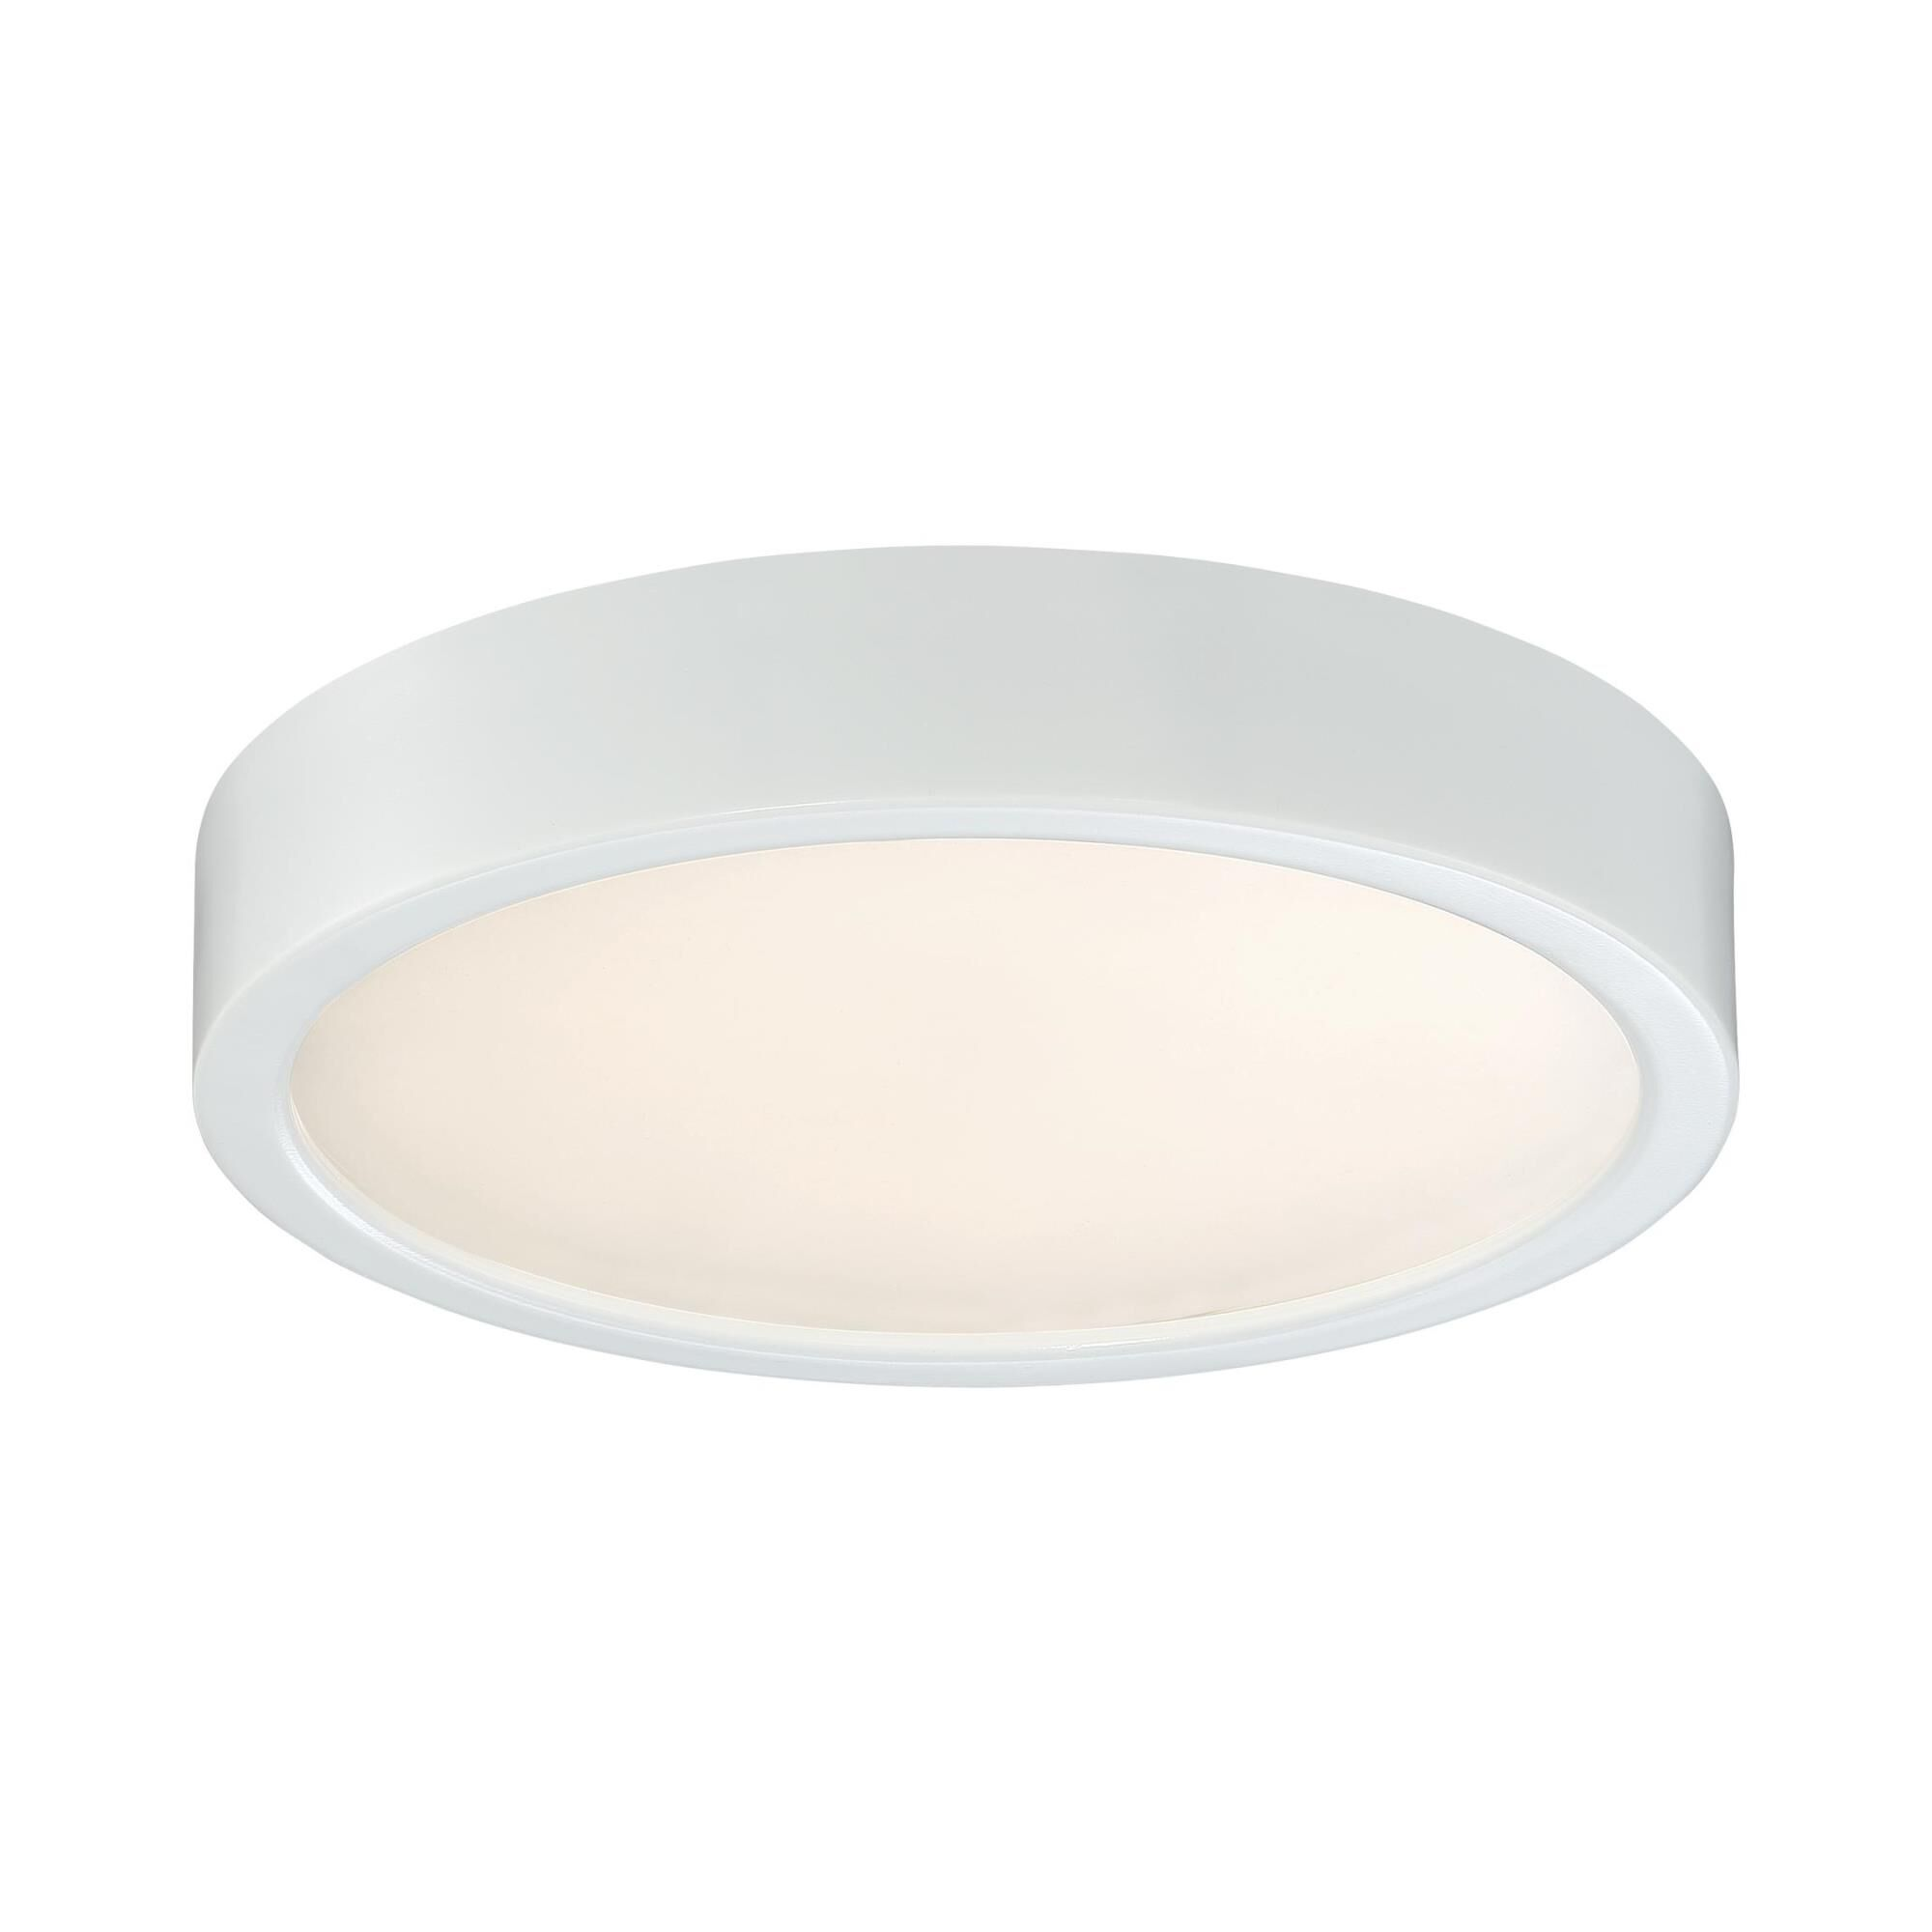 Kovacs 8 Inch 1 Light Led Flush Mount - P841-044-l - Transitional